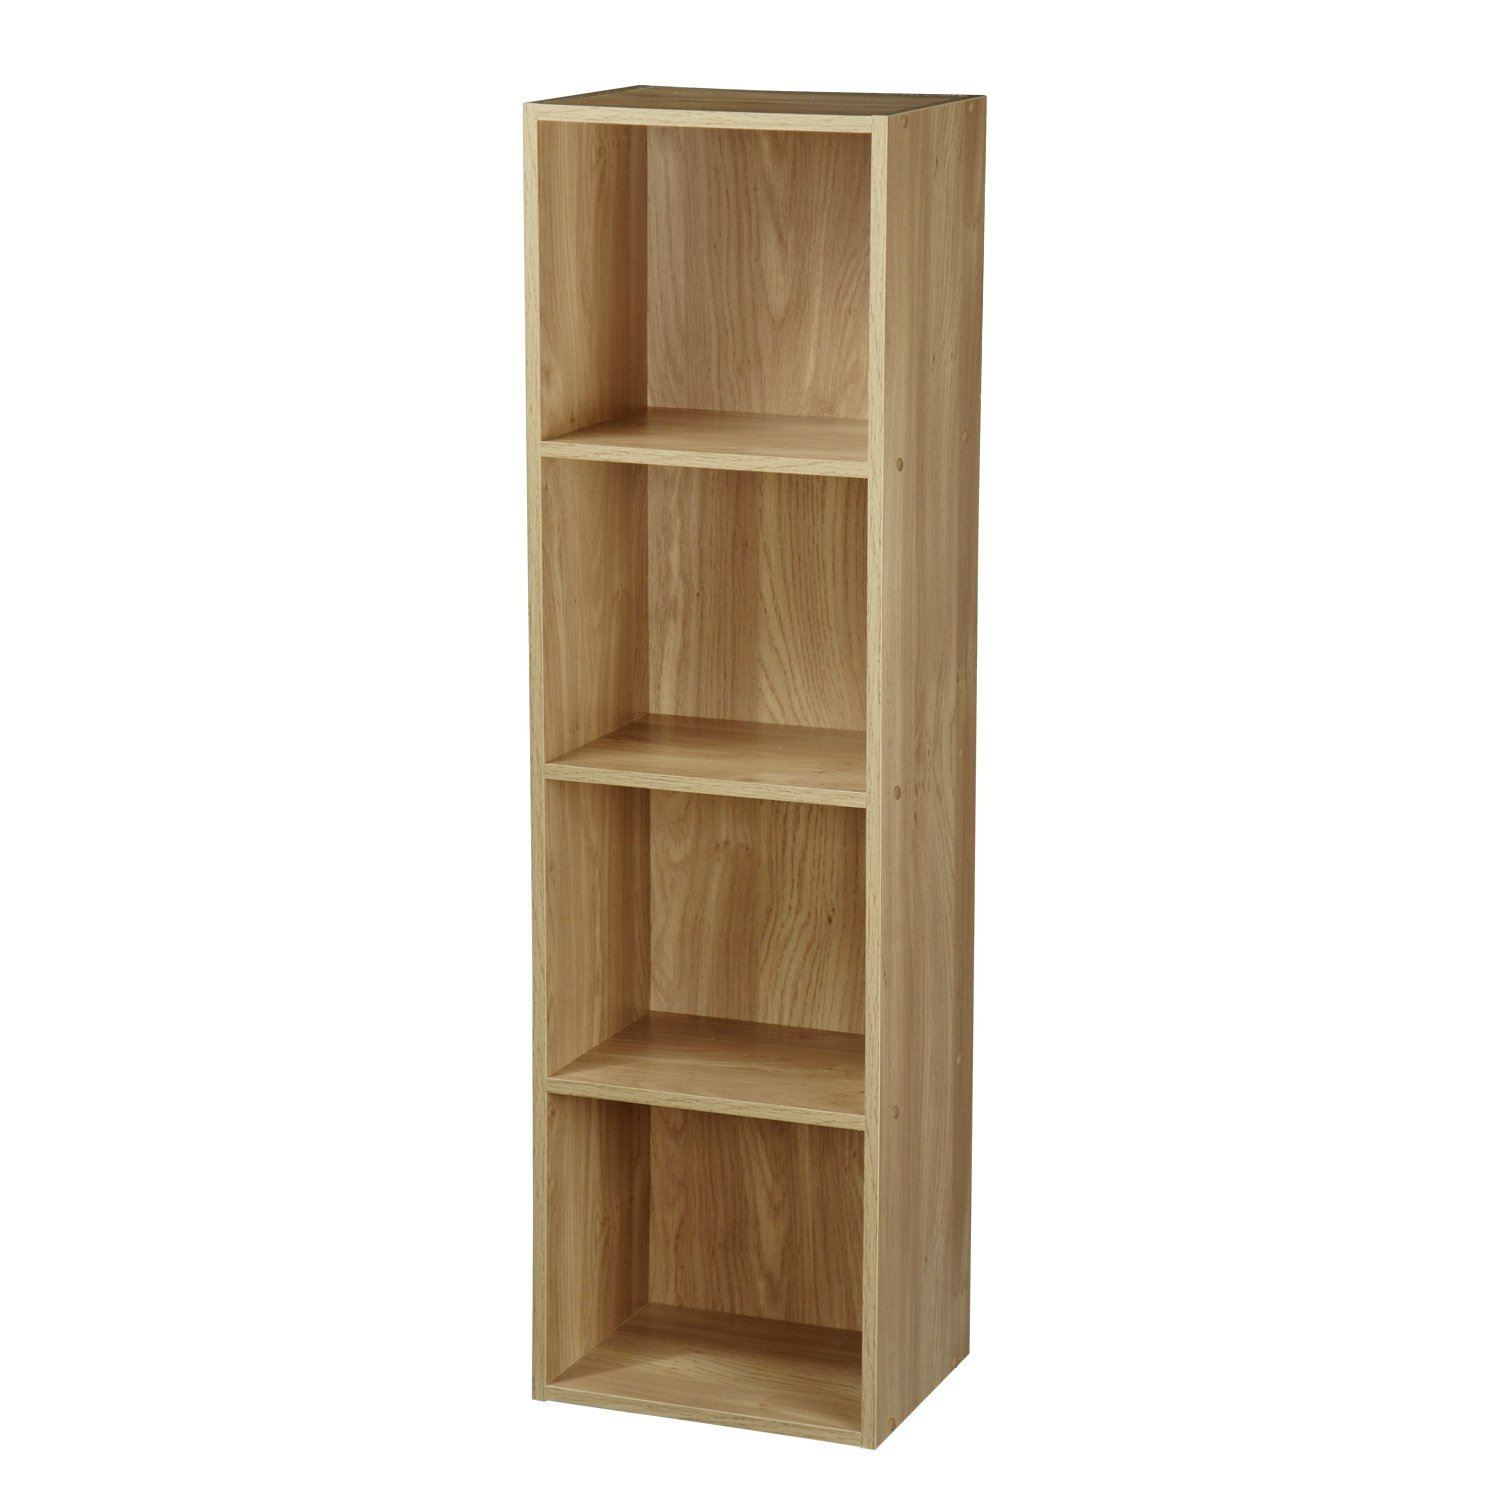 Wooden display storage units furniture shelve white oak